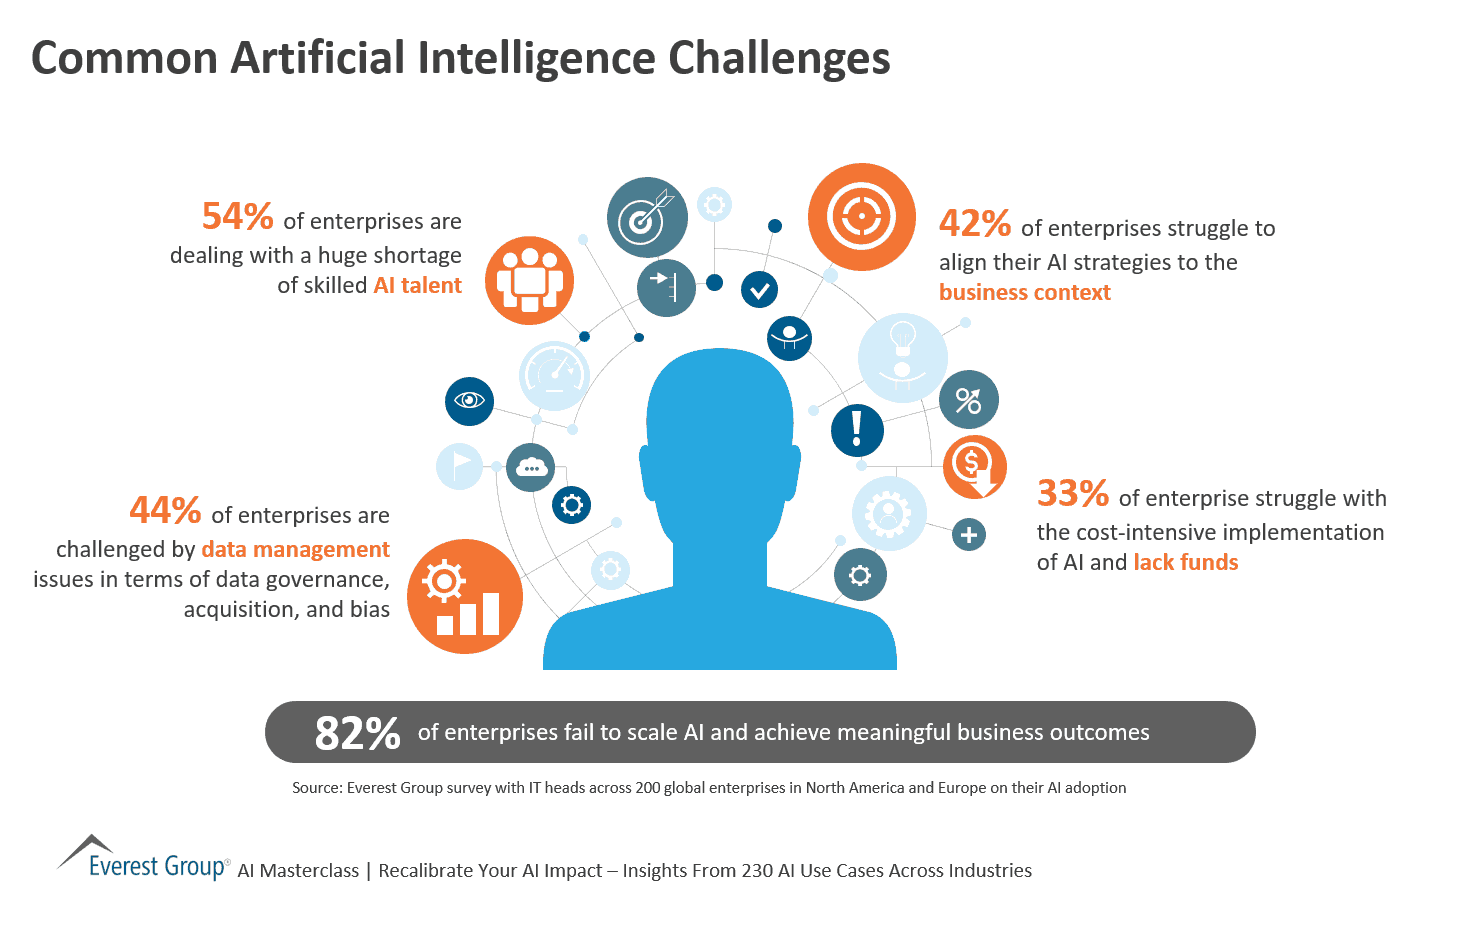 Common Artificial Intelligence Challenges